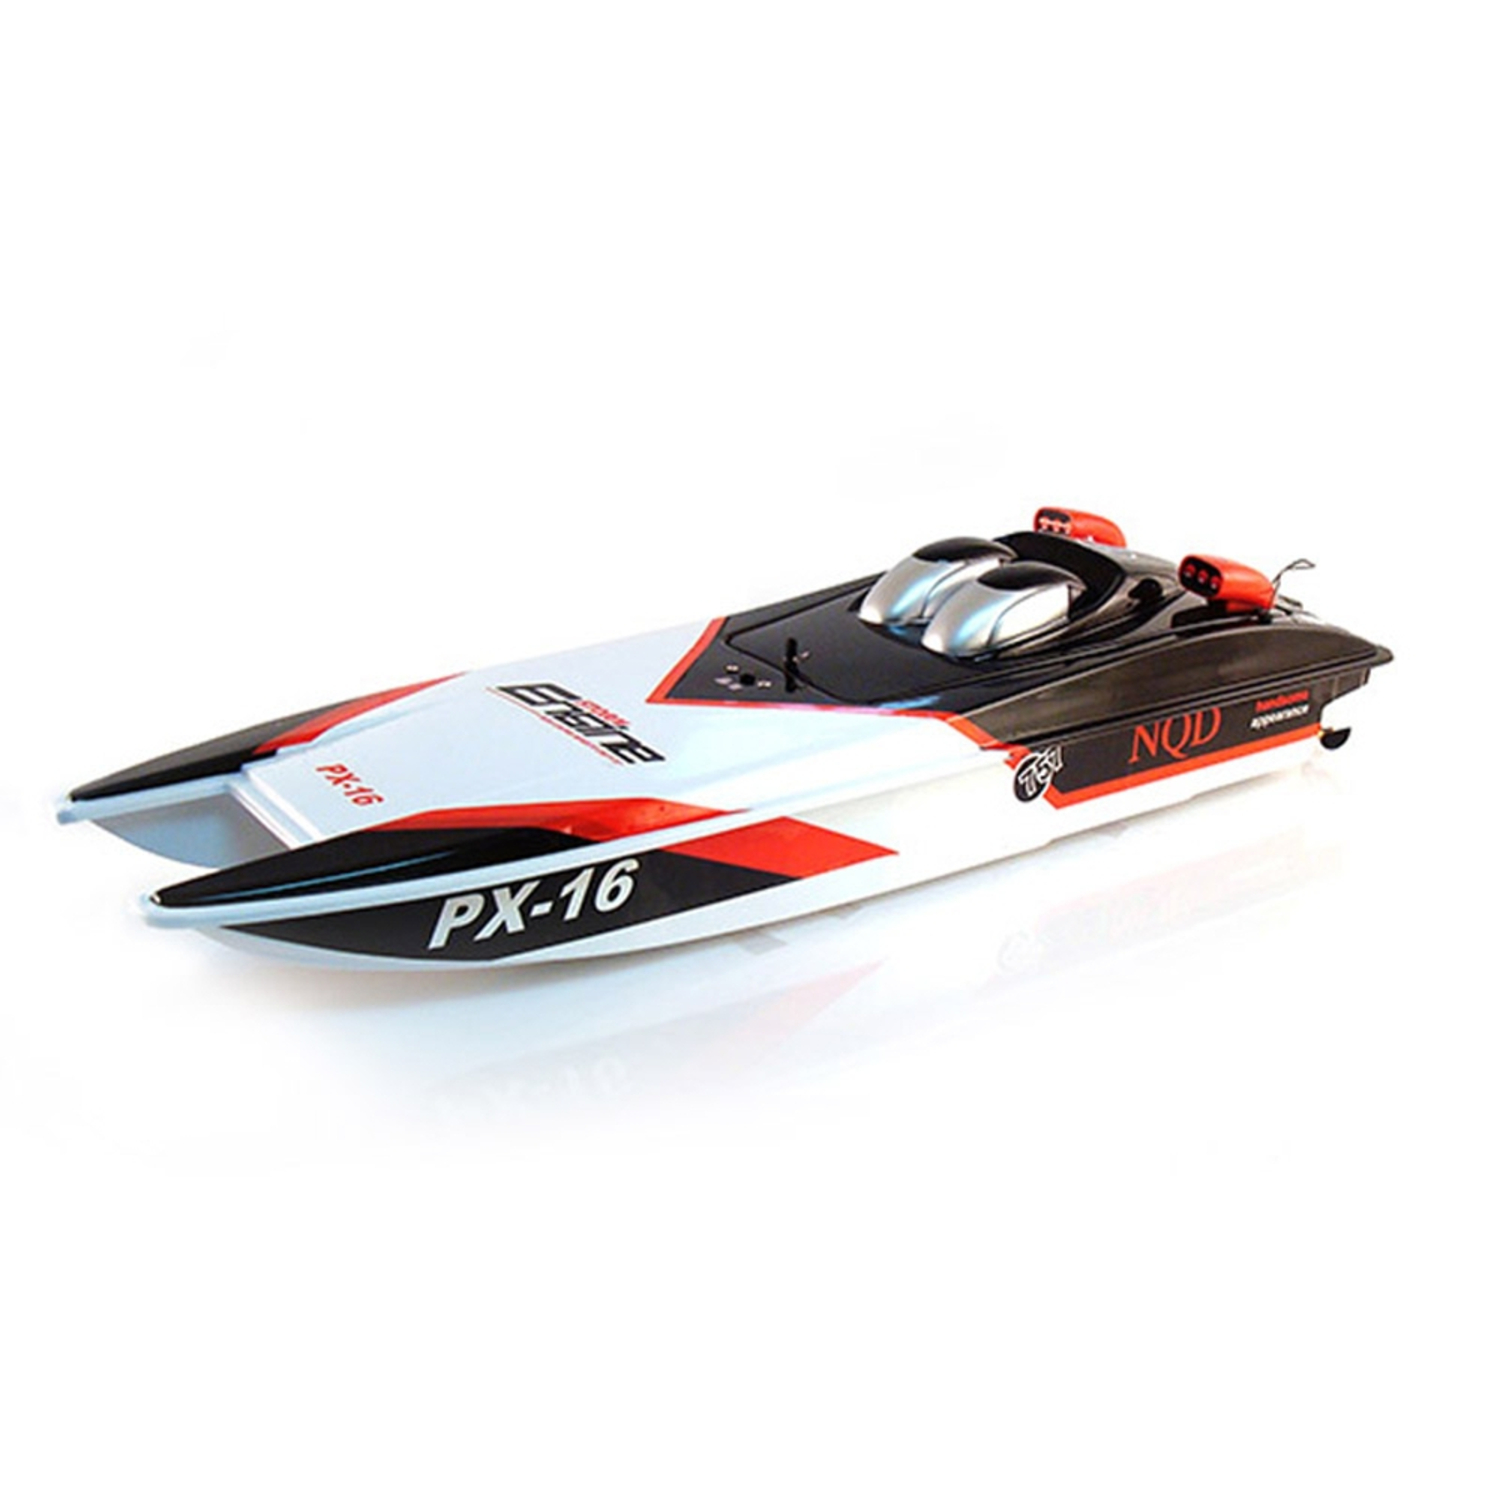 "32"" Large R C Storm Engine PX-16 Radio Control Racing Boat Ship Watercraft (Gift Idea) by"